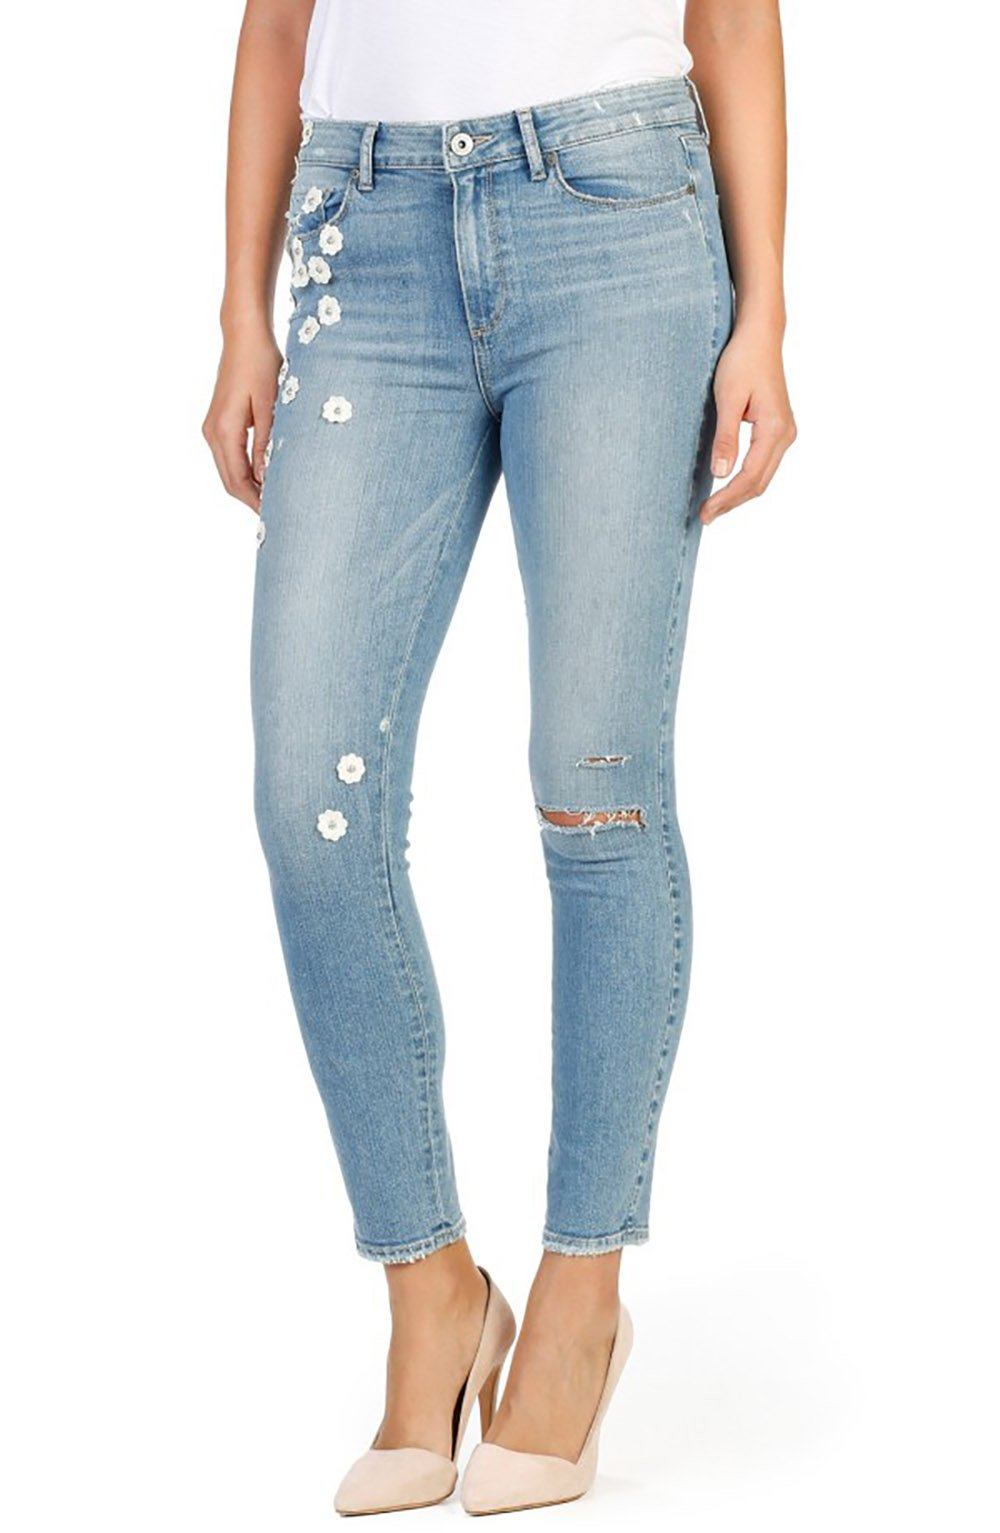 Paige Women's Hoxton High Rise Ultra Skinny Jeans (32, Studded)